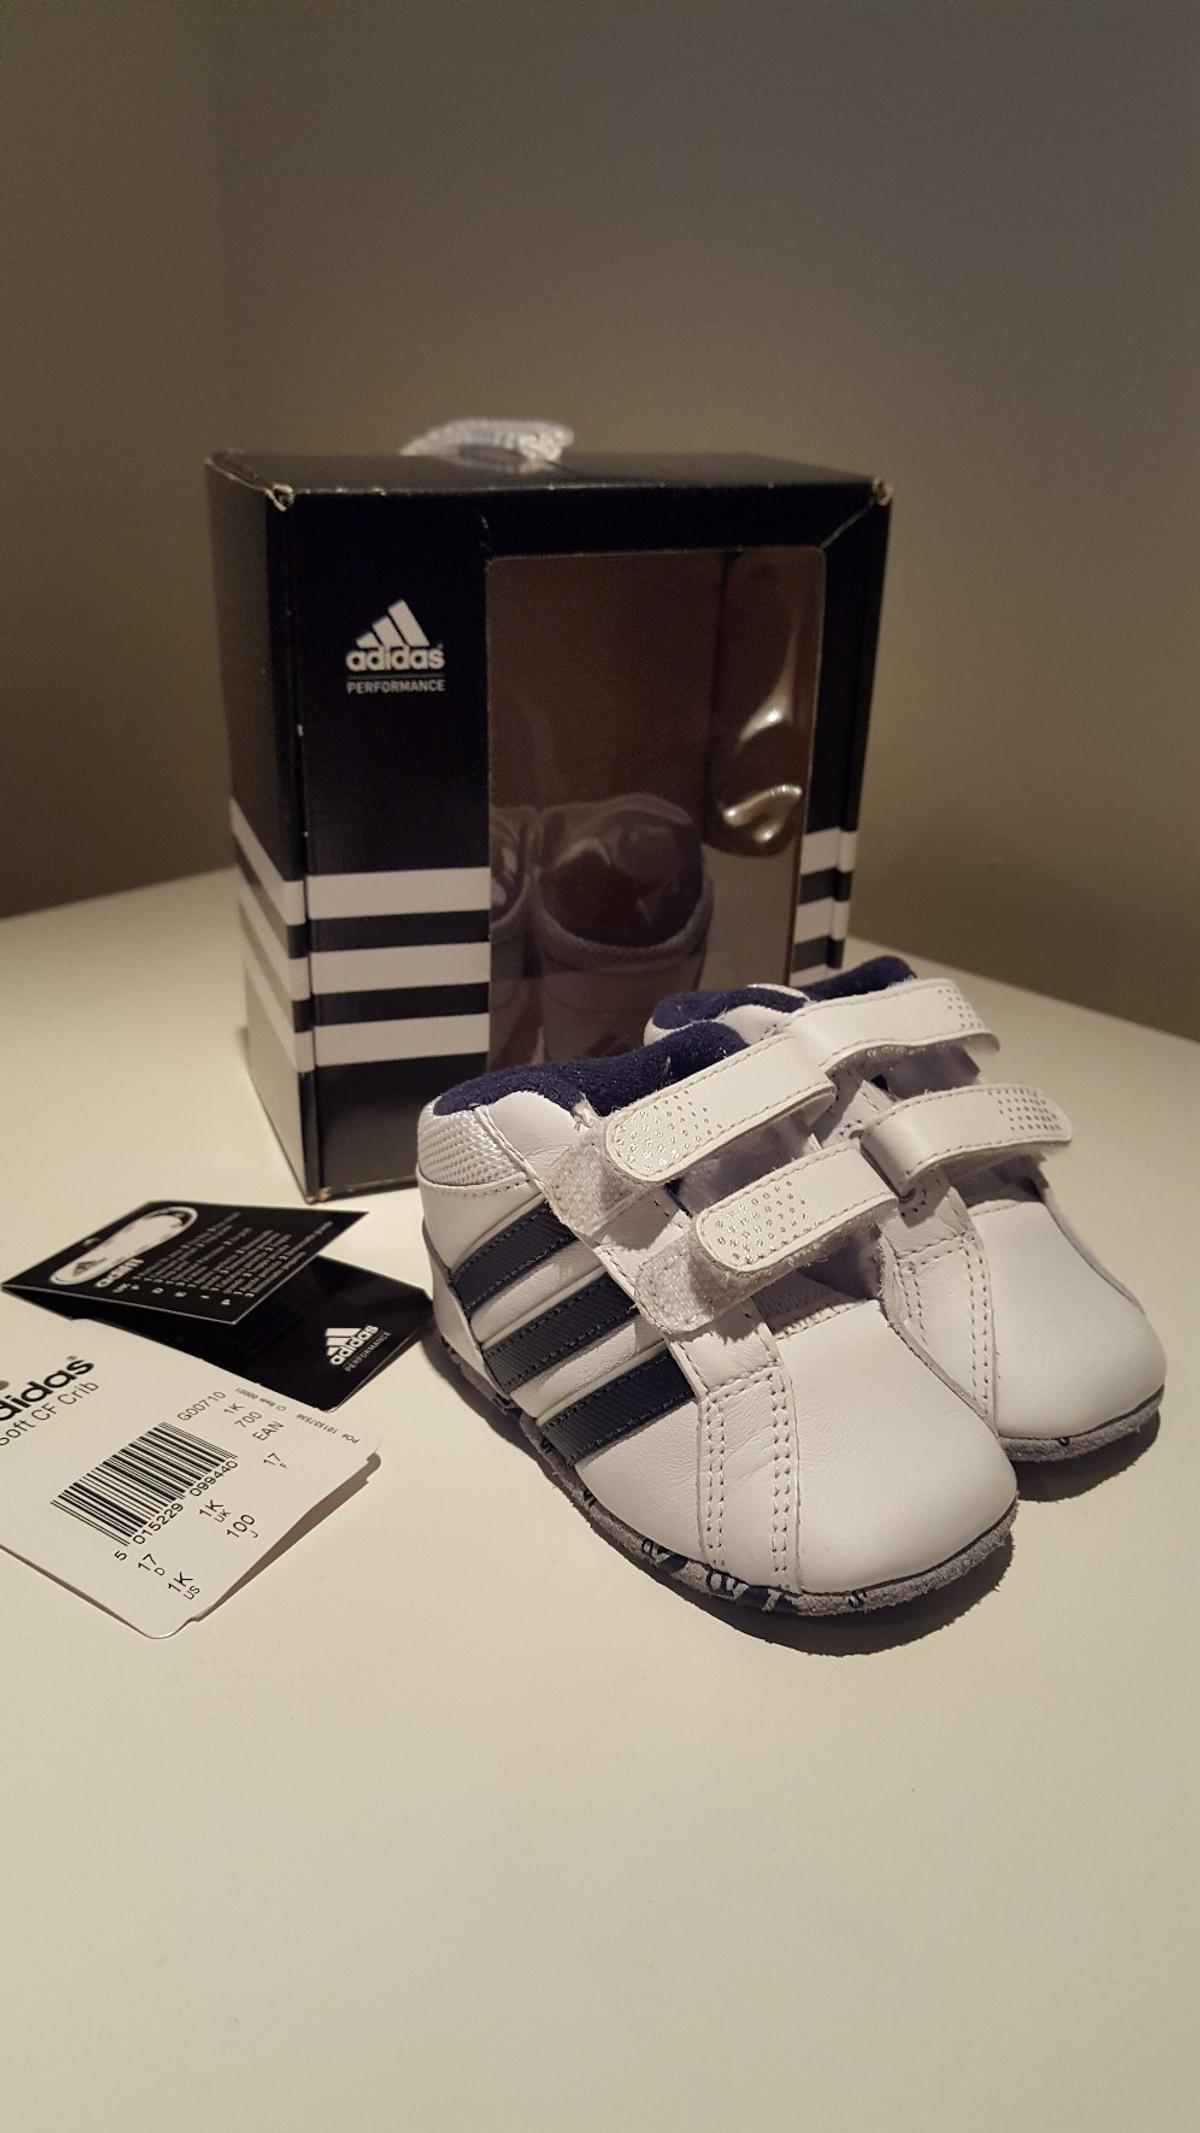 Adidas baby trainers size 1K in Lincoln for £8.00 for sale